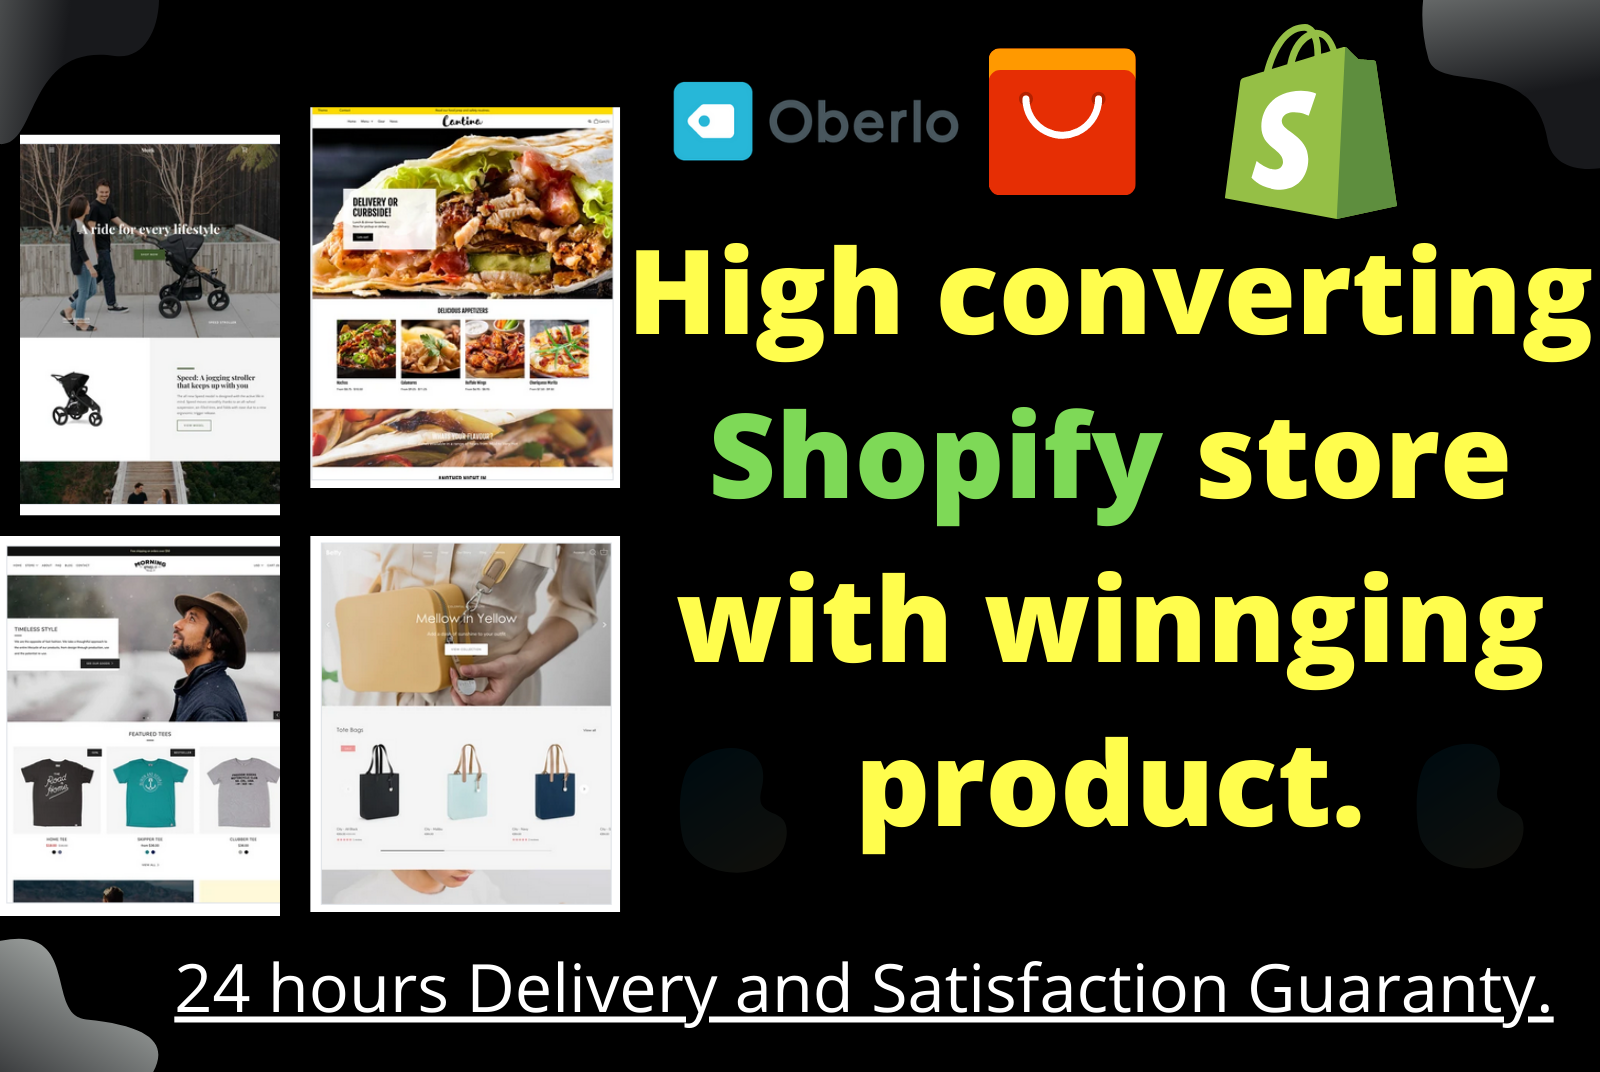 I will make a high converting shopify store with winning product